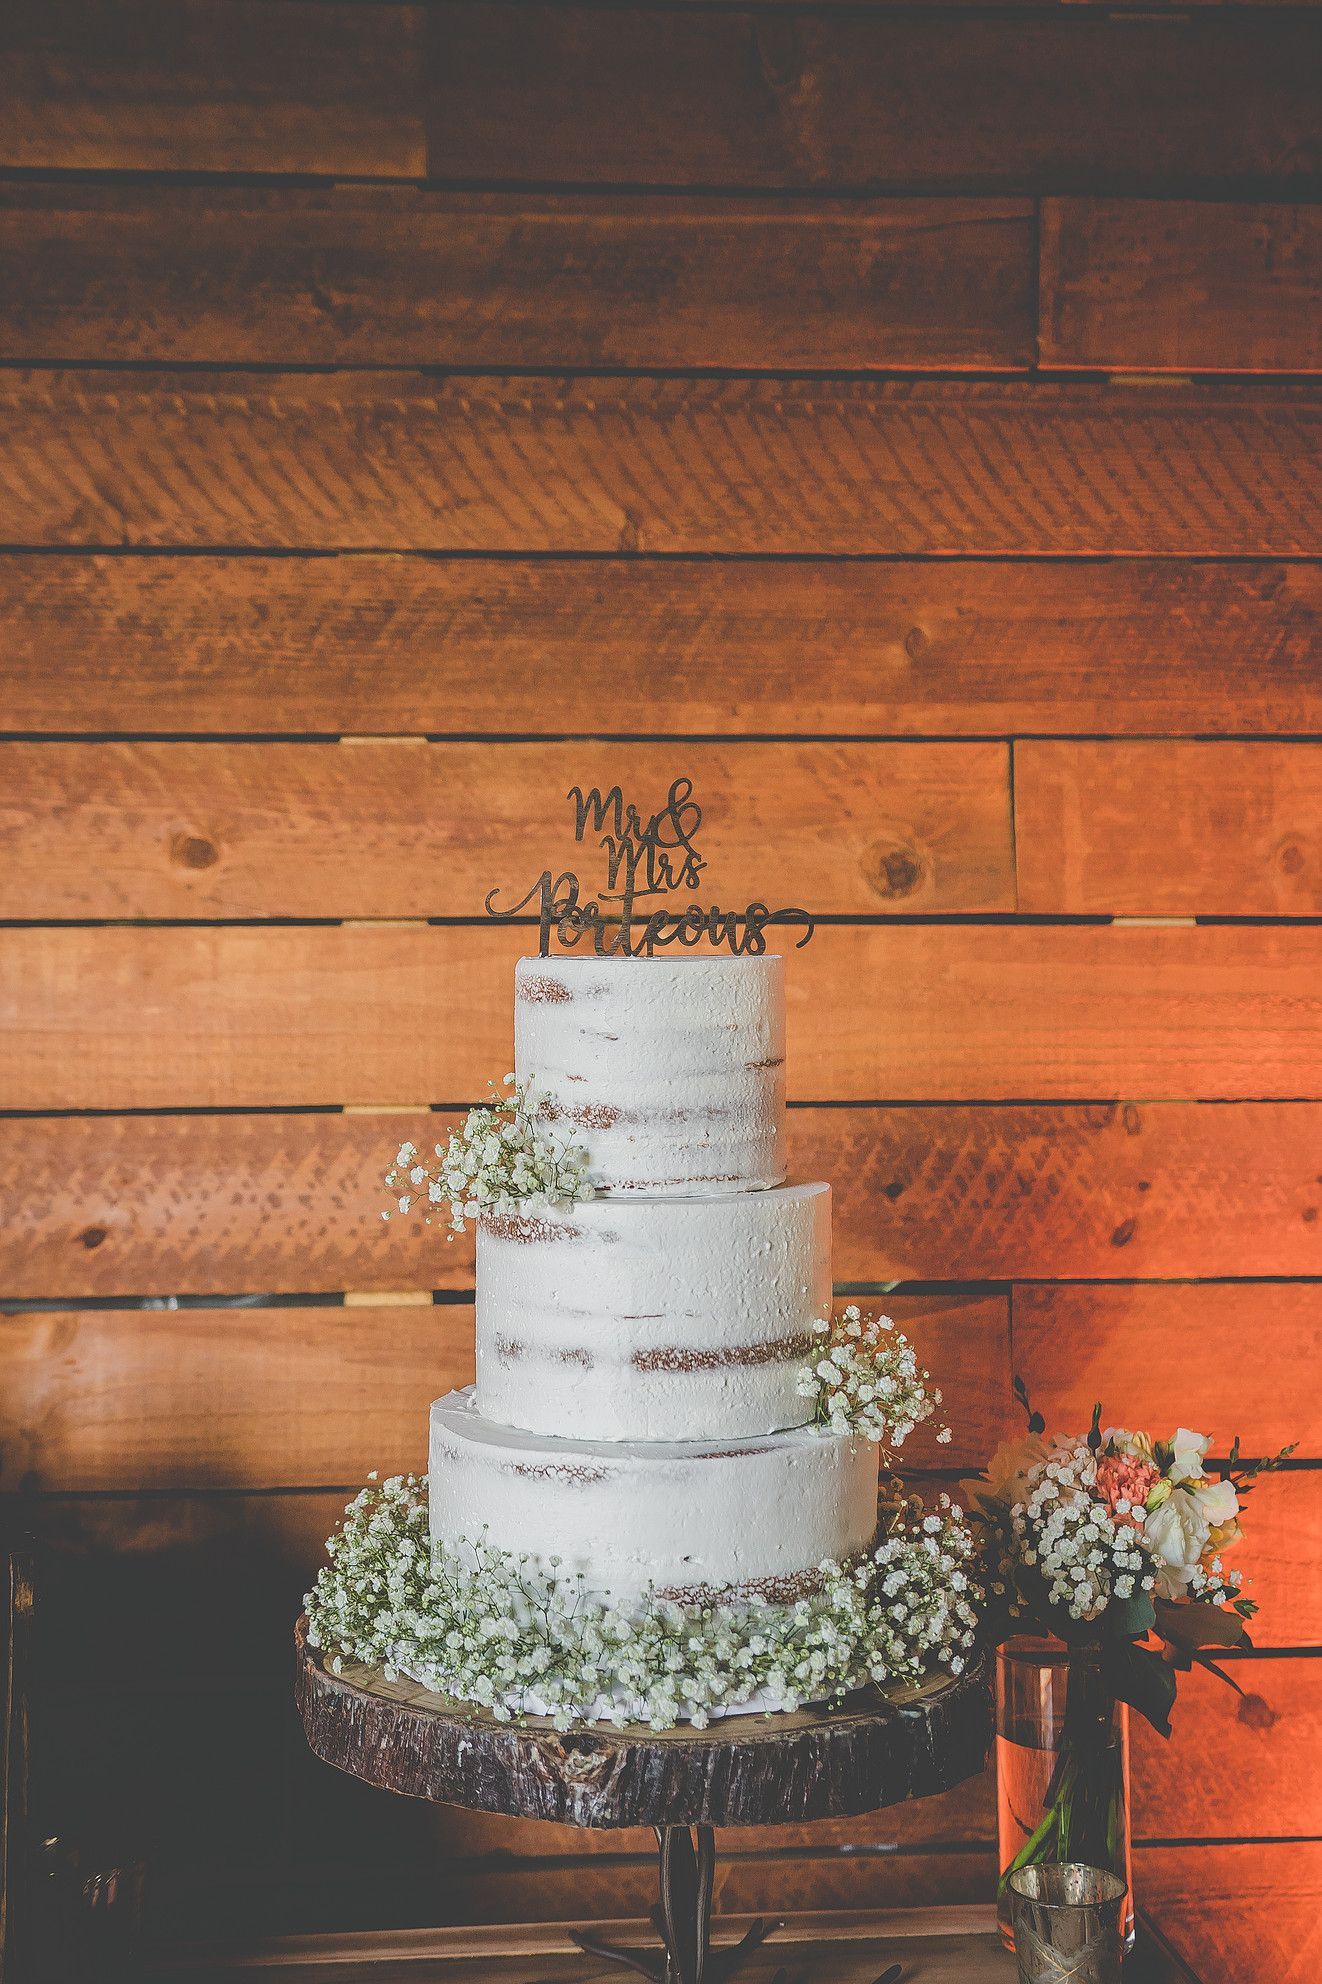 Bare wedding cake with babyus breath wooden cake topper cut wood